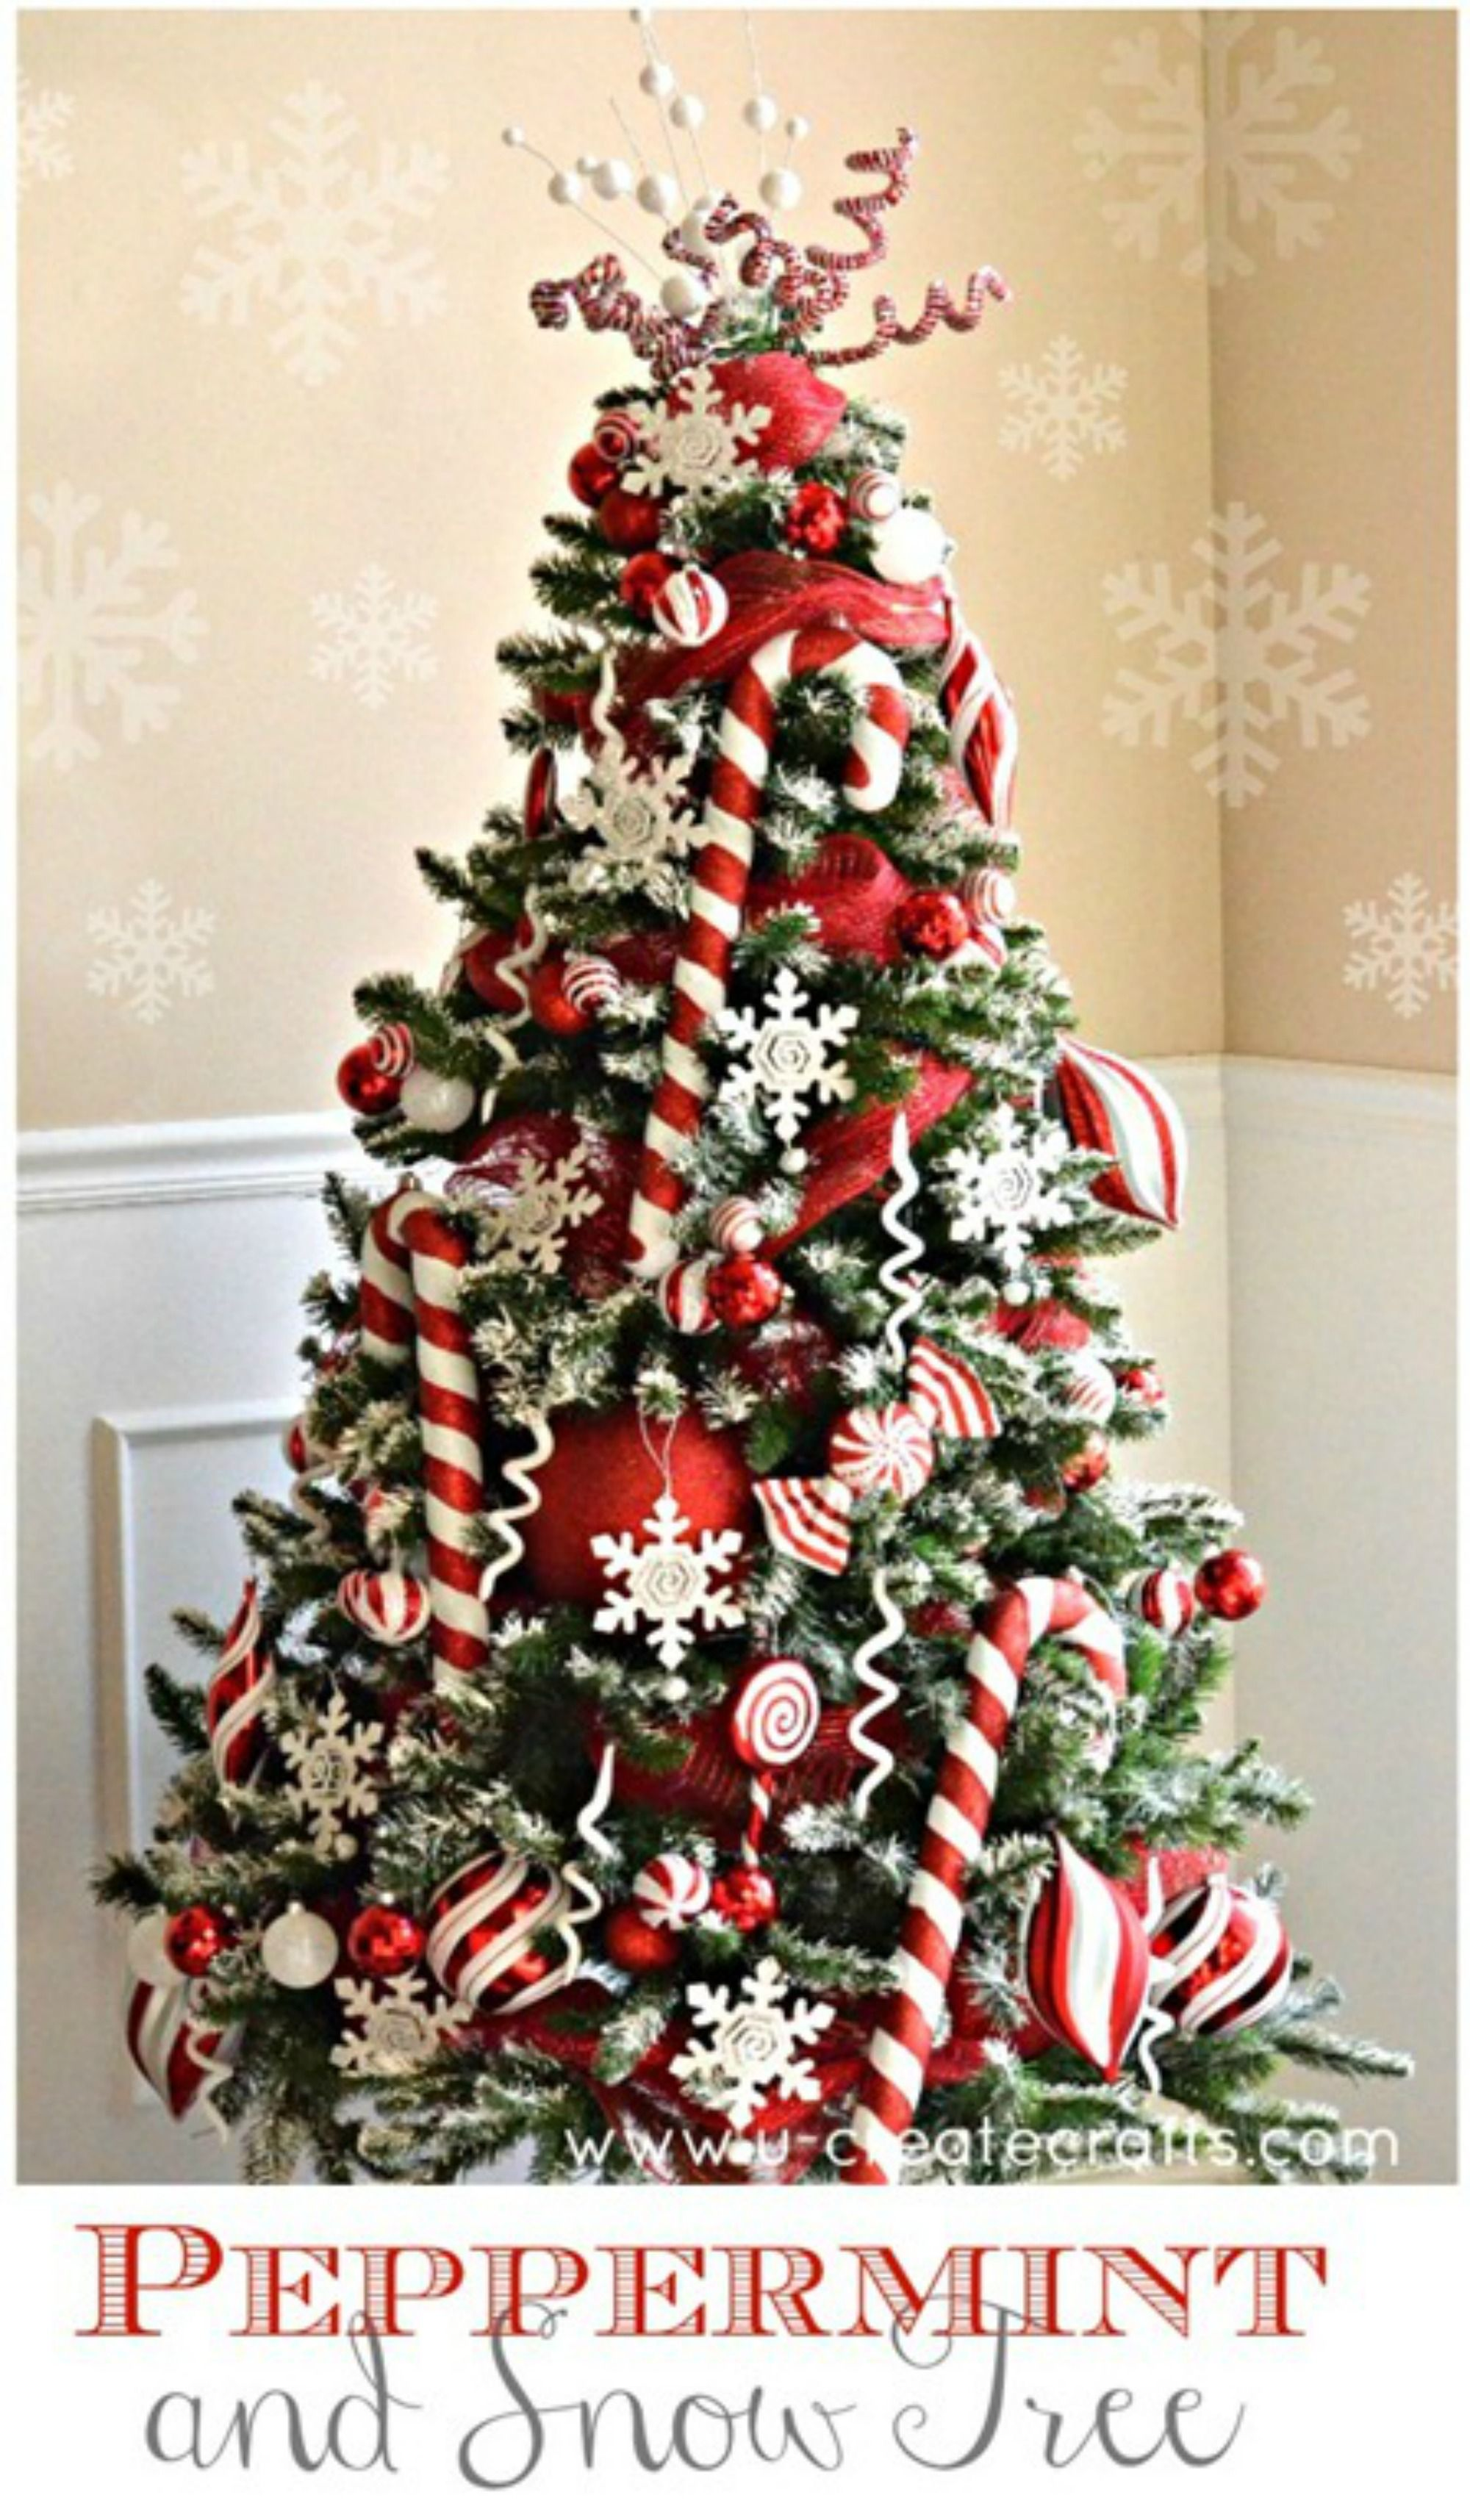 33 Unique Christmas Tree Decoration Ideas - Pictures of Decorated Christmas Trees